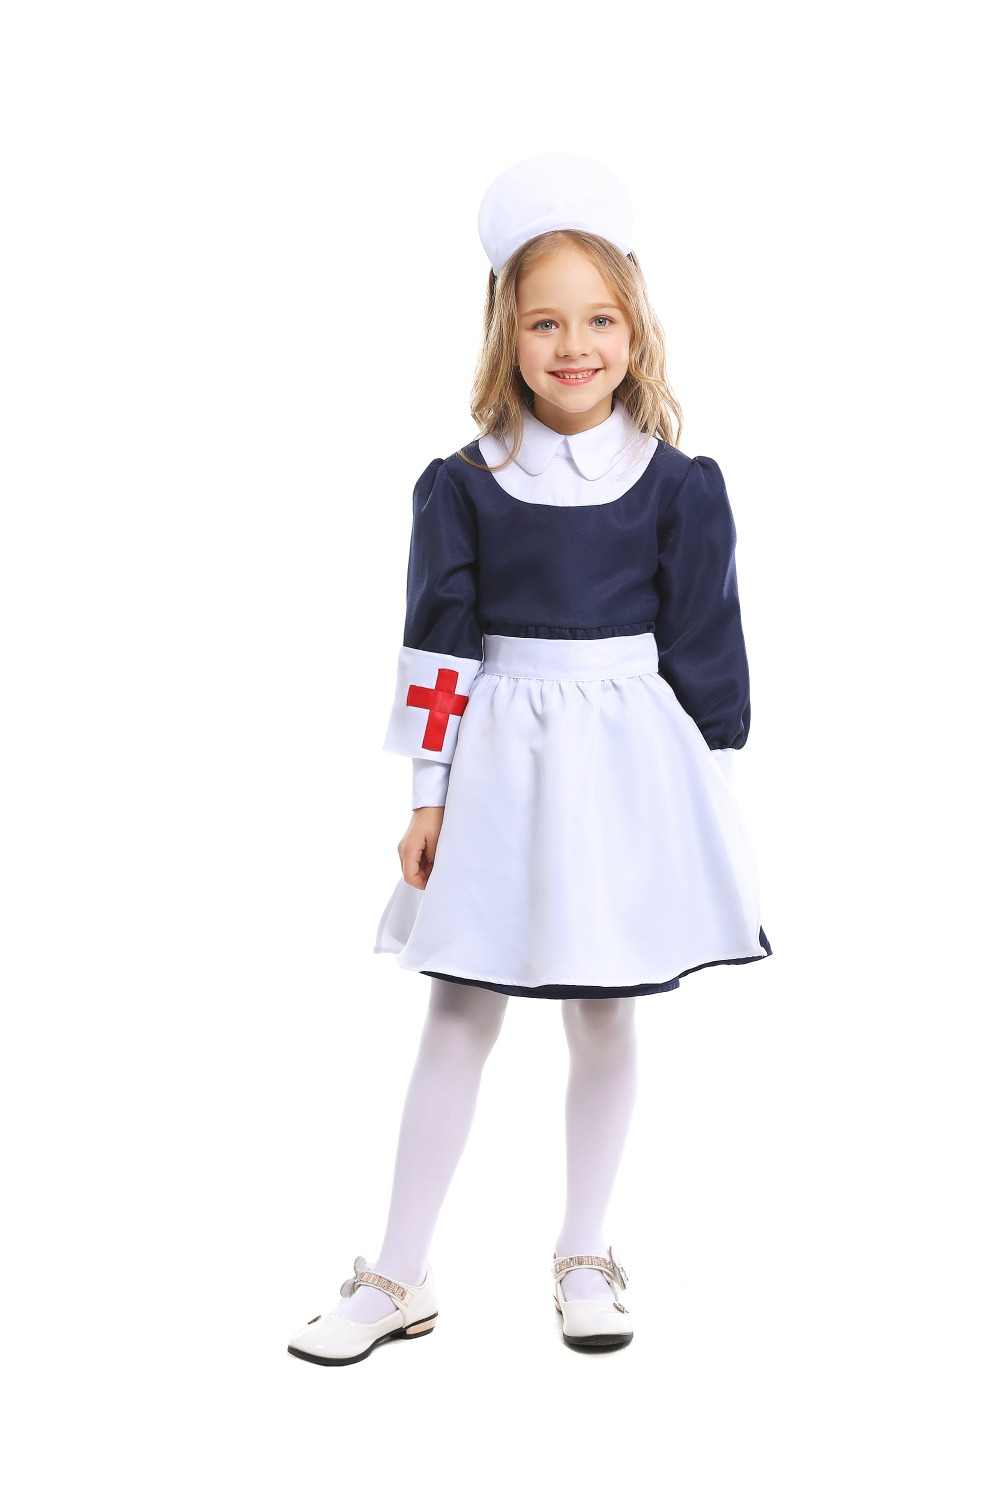 Kids Doctor Cosplay Costumes Baby Girls Nurse Uniforms Role Play Halloween Party Wear Fancy 4 PCs Girls Cosplay Doctor Jacket